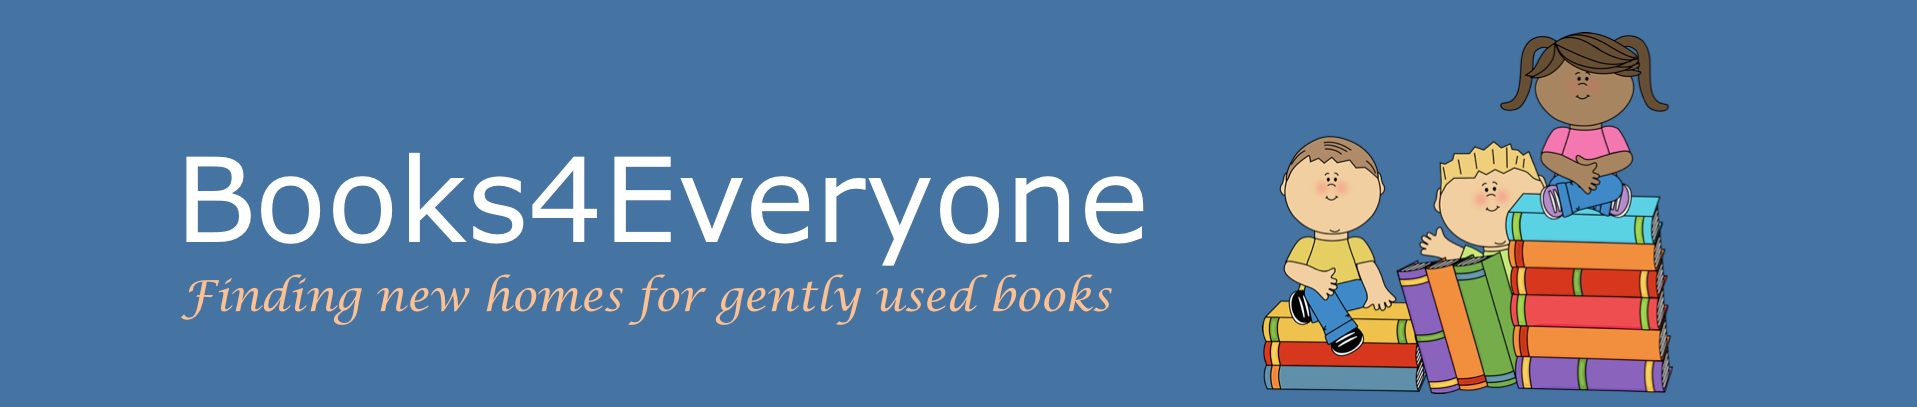 BOOKS 4 EVERYONE